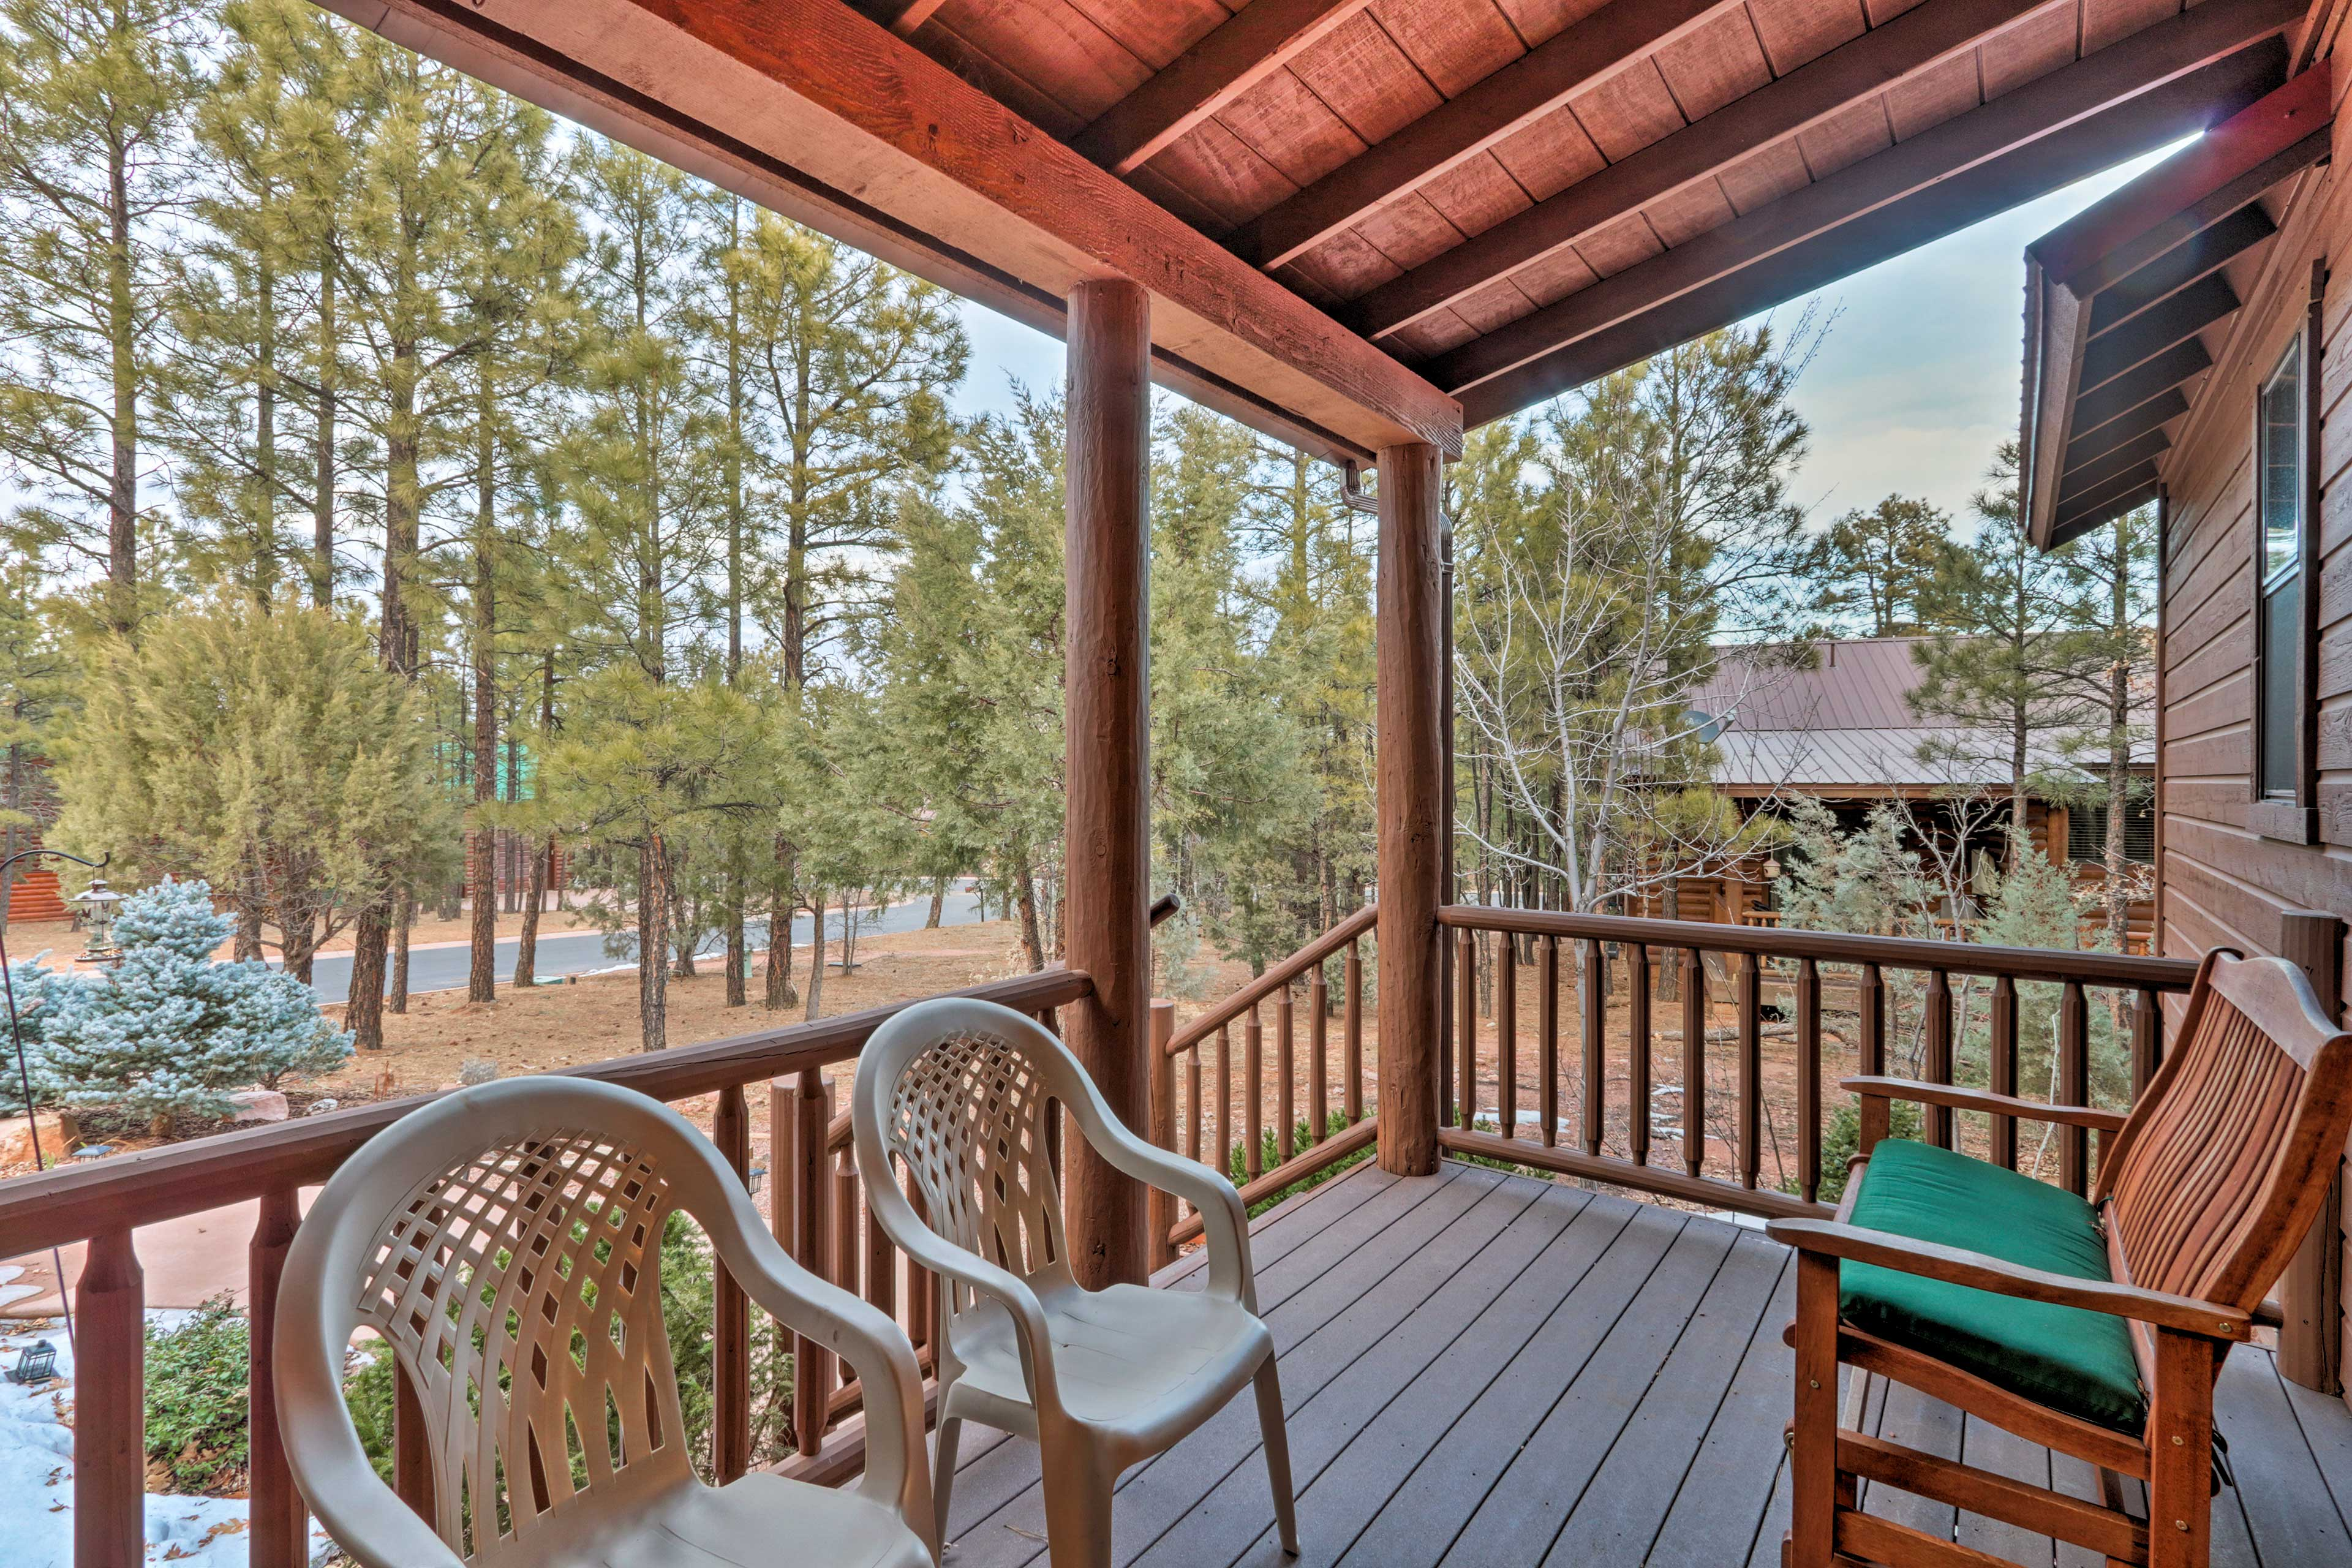 Sip your morning coffee on the deck.